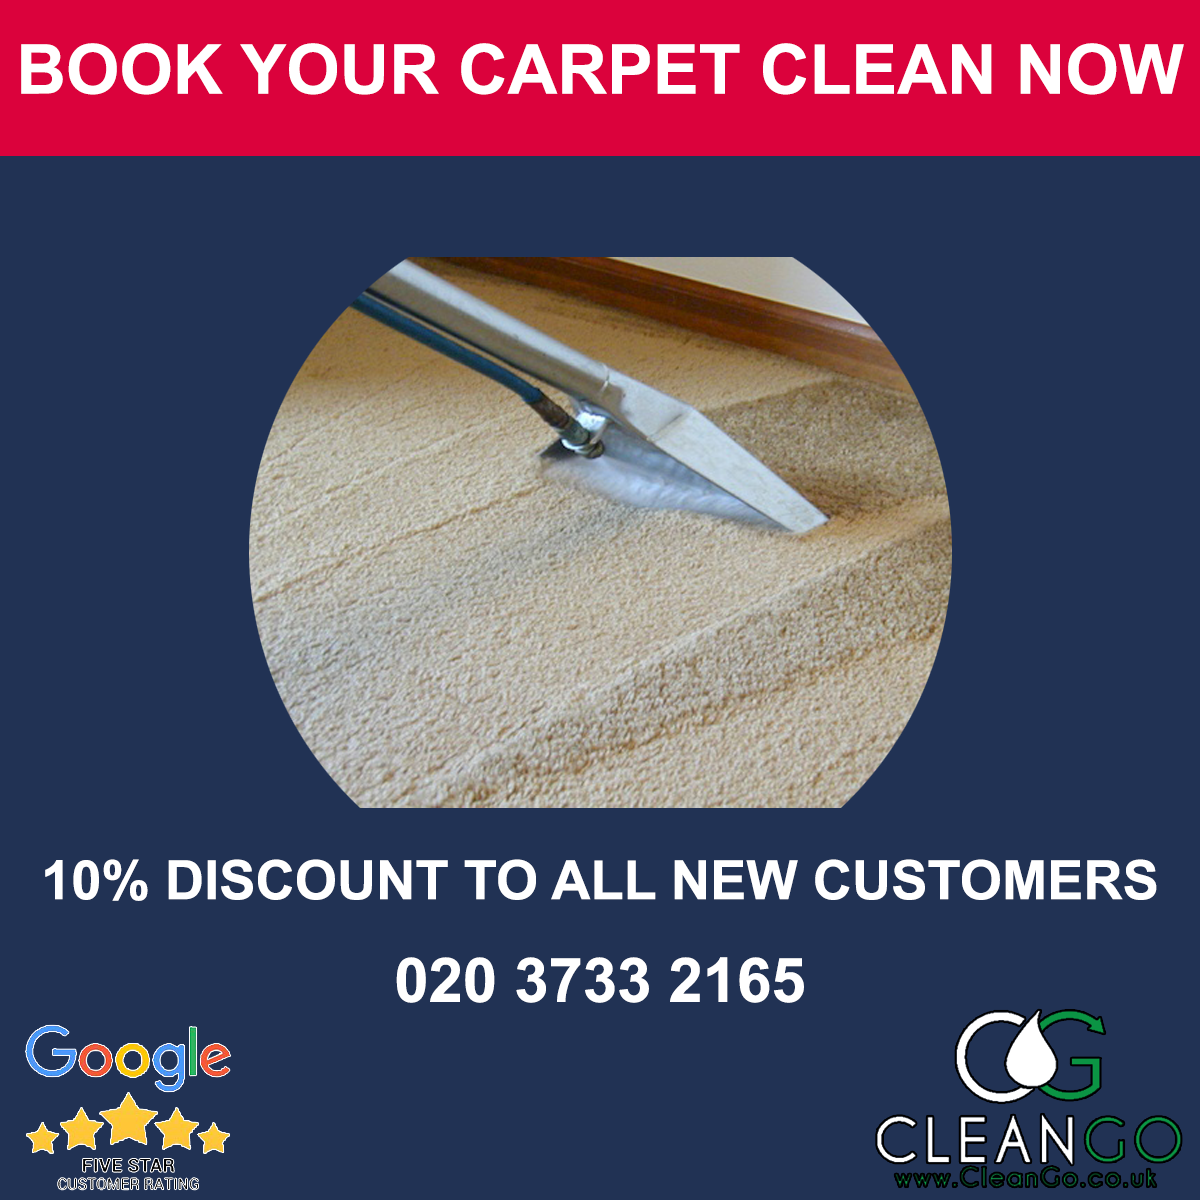 Carpet Cleaning North Weald - Professional Carpet Cleaning